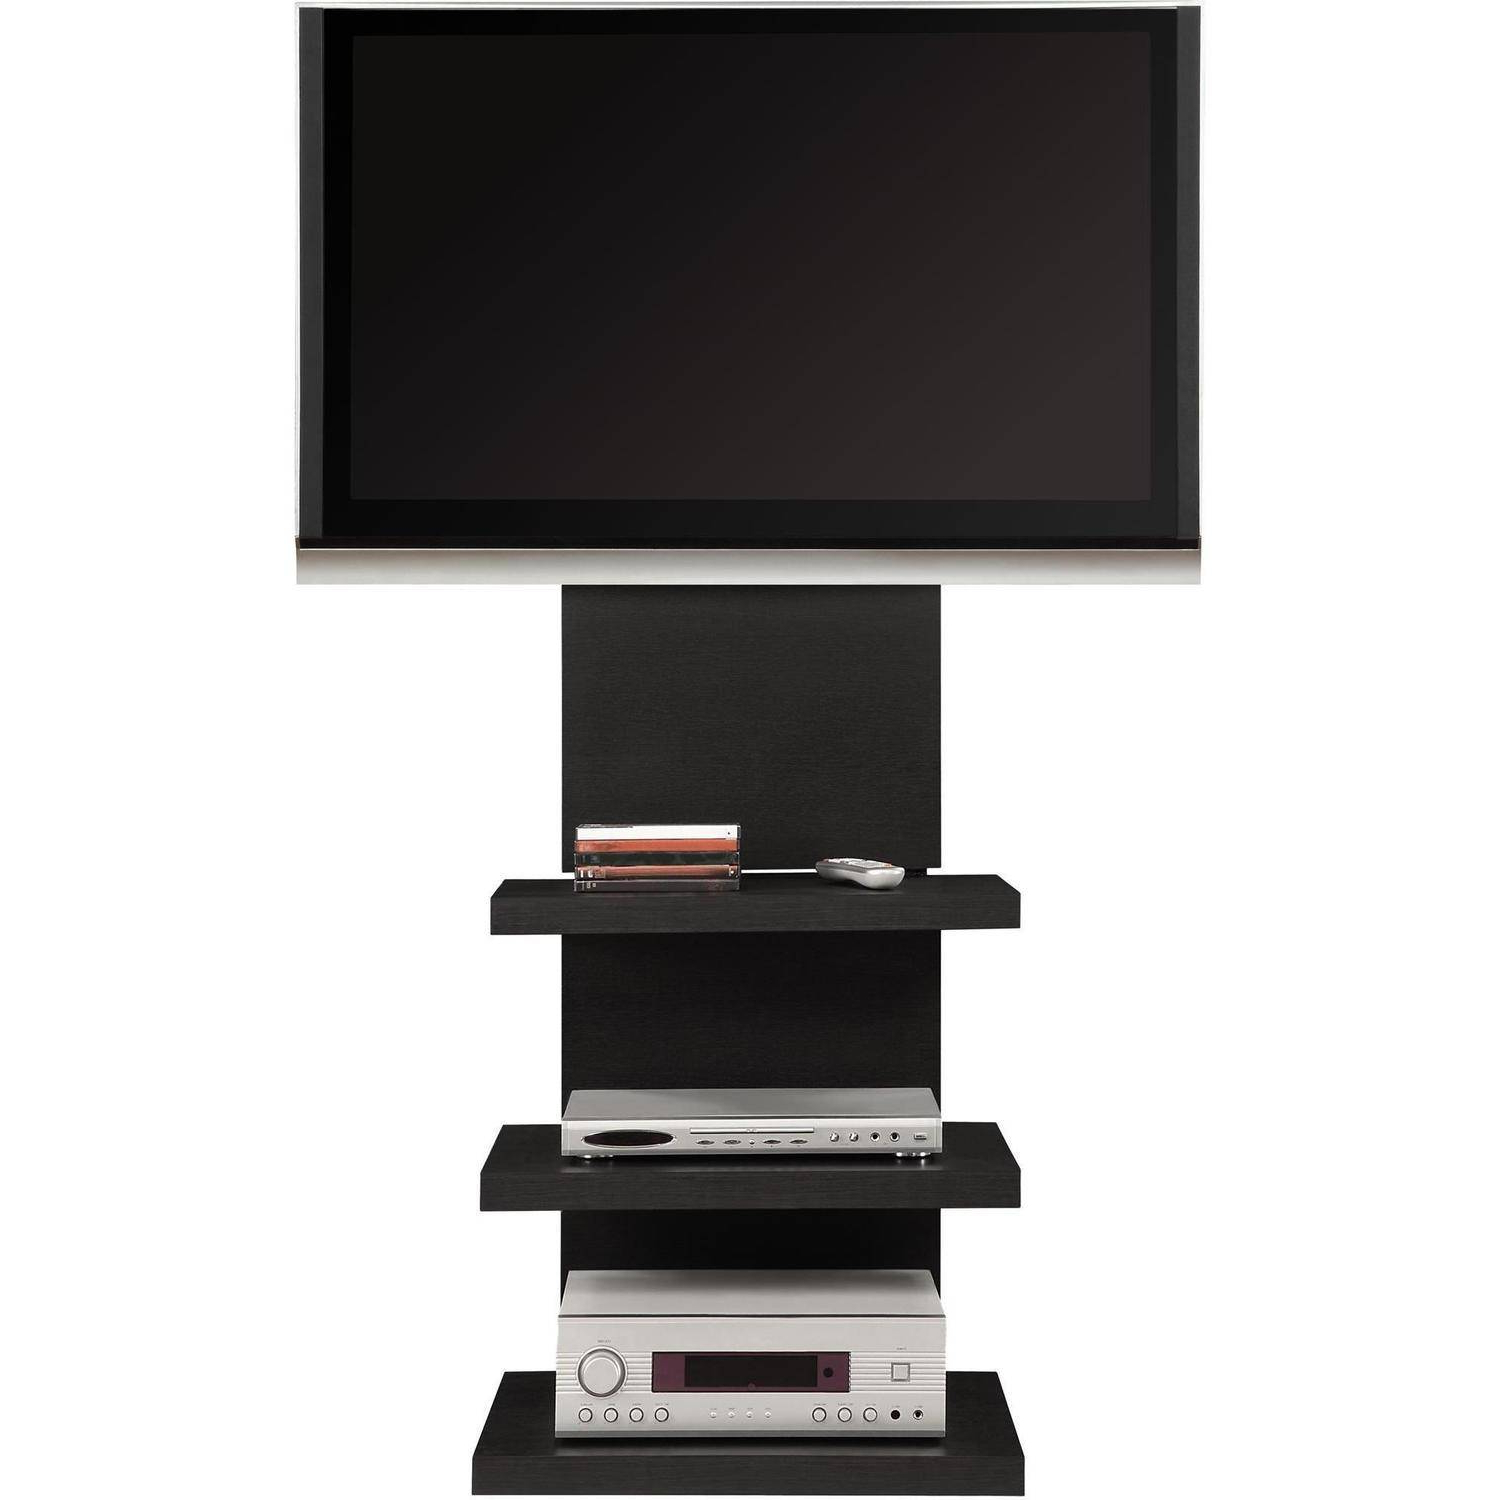 Tv Stand Altramount Television Rack Wall Shelves Media Furniture 60 Inside Famous Wall Mounted Tv Stands With Shelves (View 5 of 20)